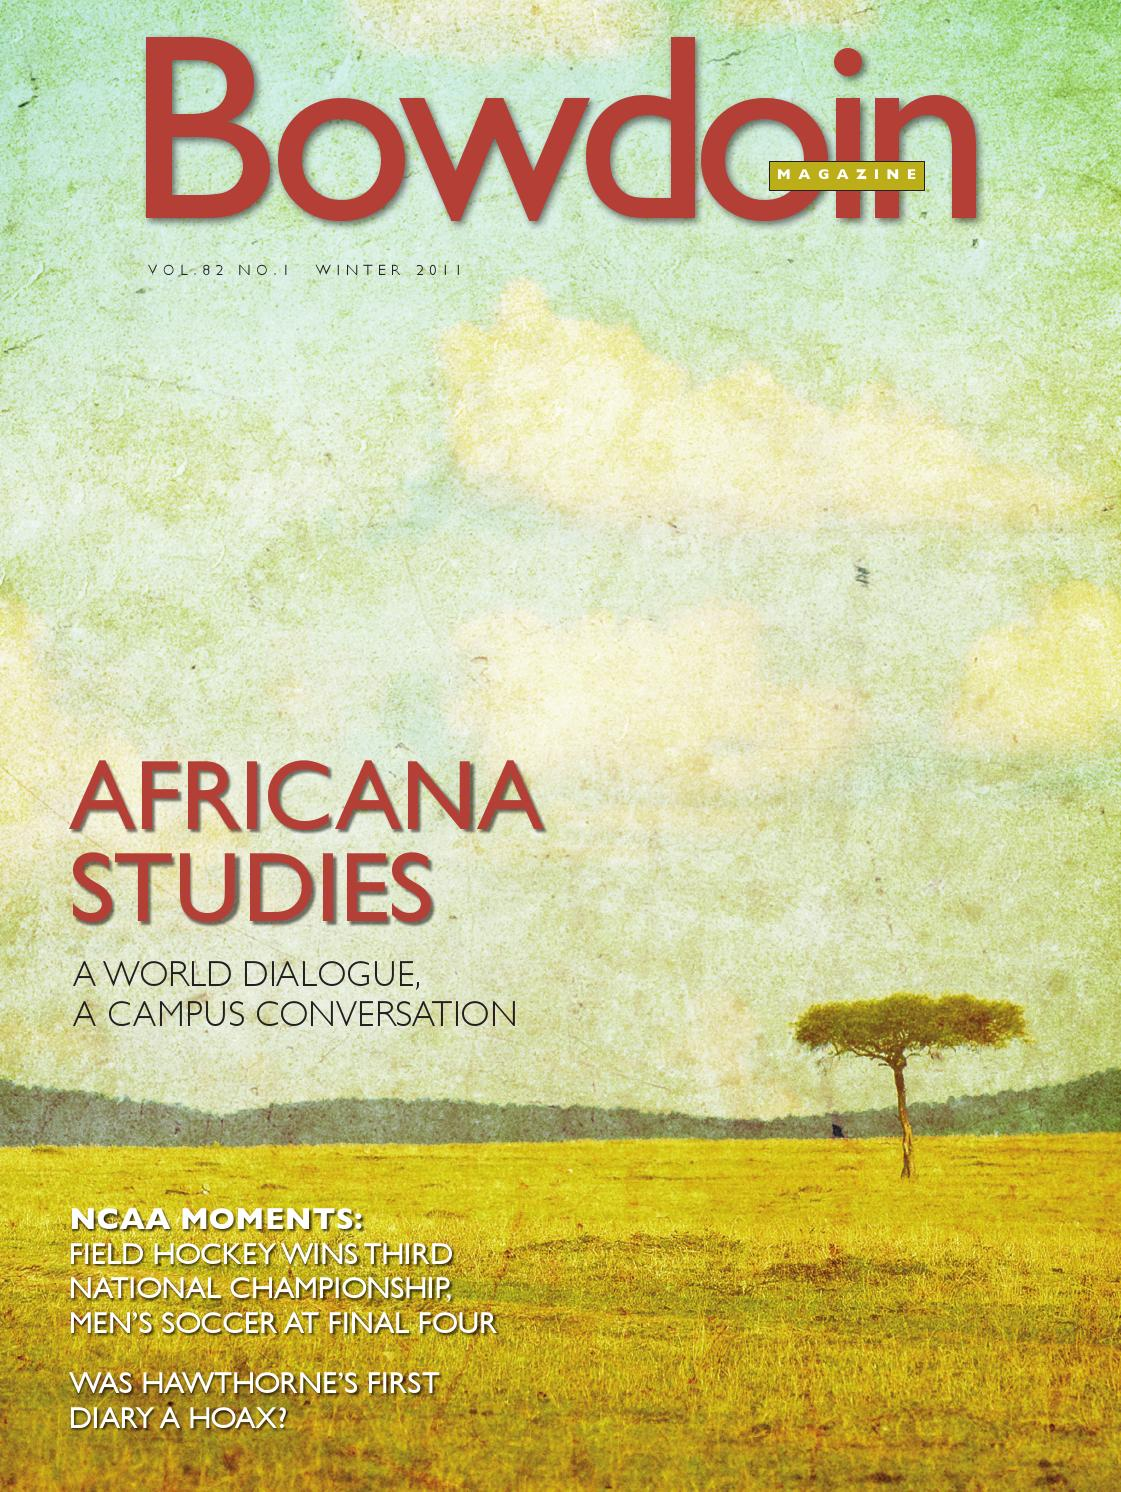 Bowdoin magazine vol 82 no 1 winter 2011 by bowdoin magazine bowdoin magazine vol 82 no 1 winter 2011 by bowdoin magazine issuu fandeluxe Image collections